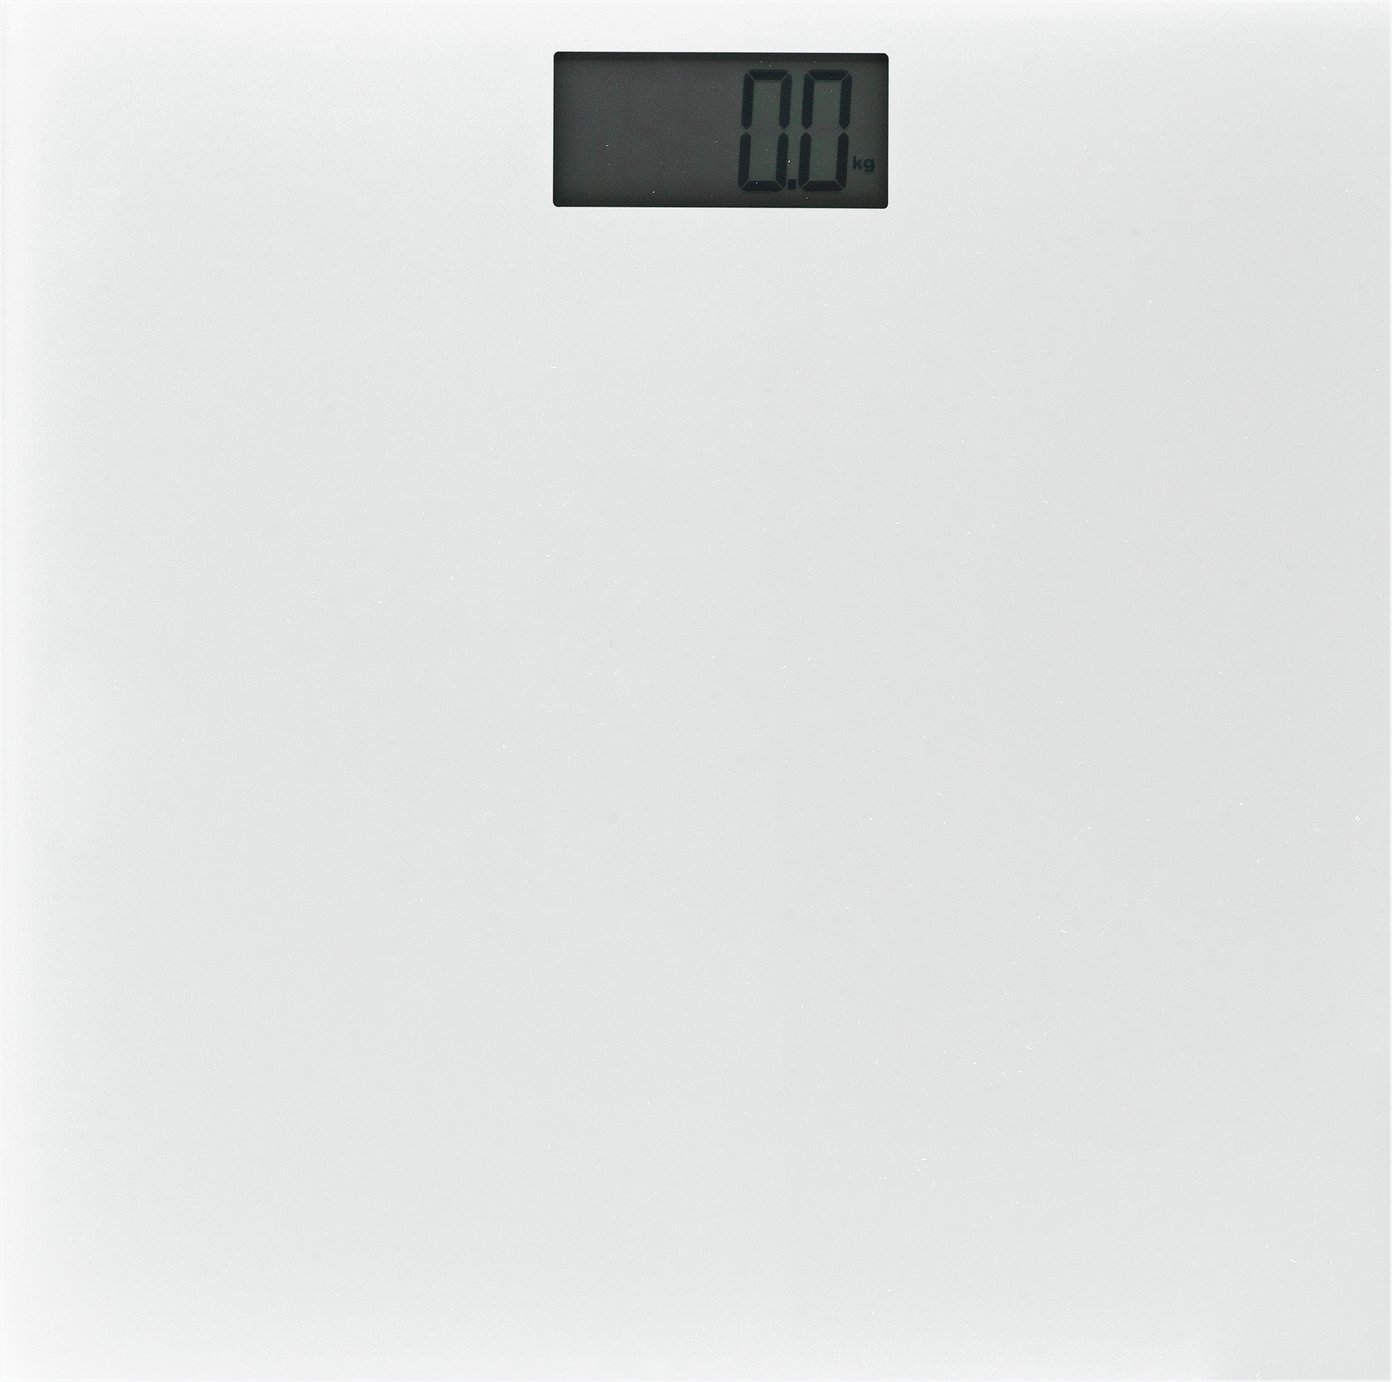 ColourMatch by Argos Electronic Scales - Super White